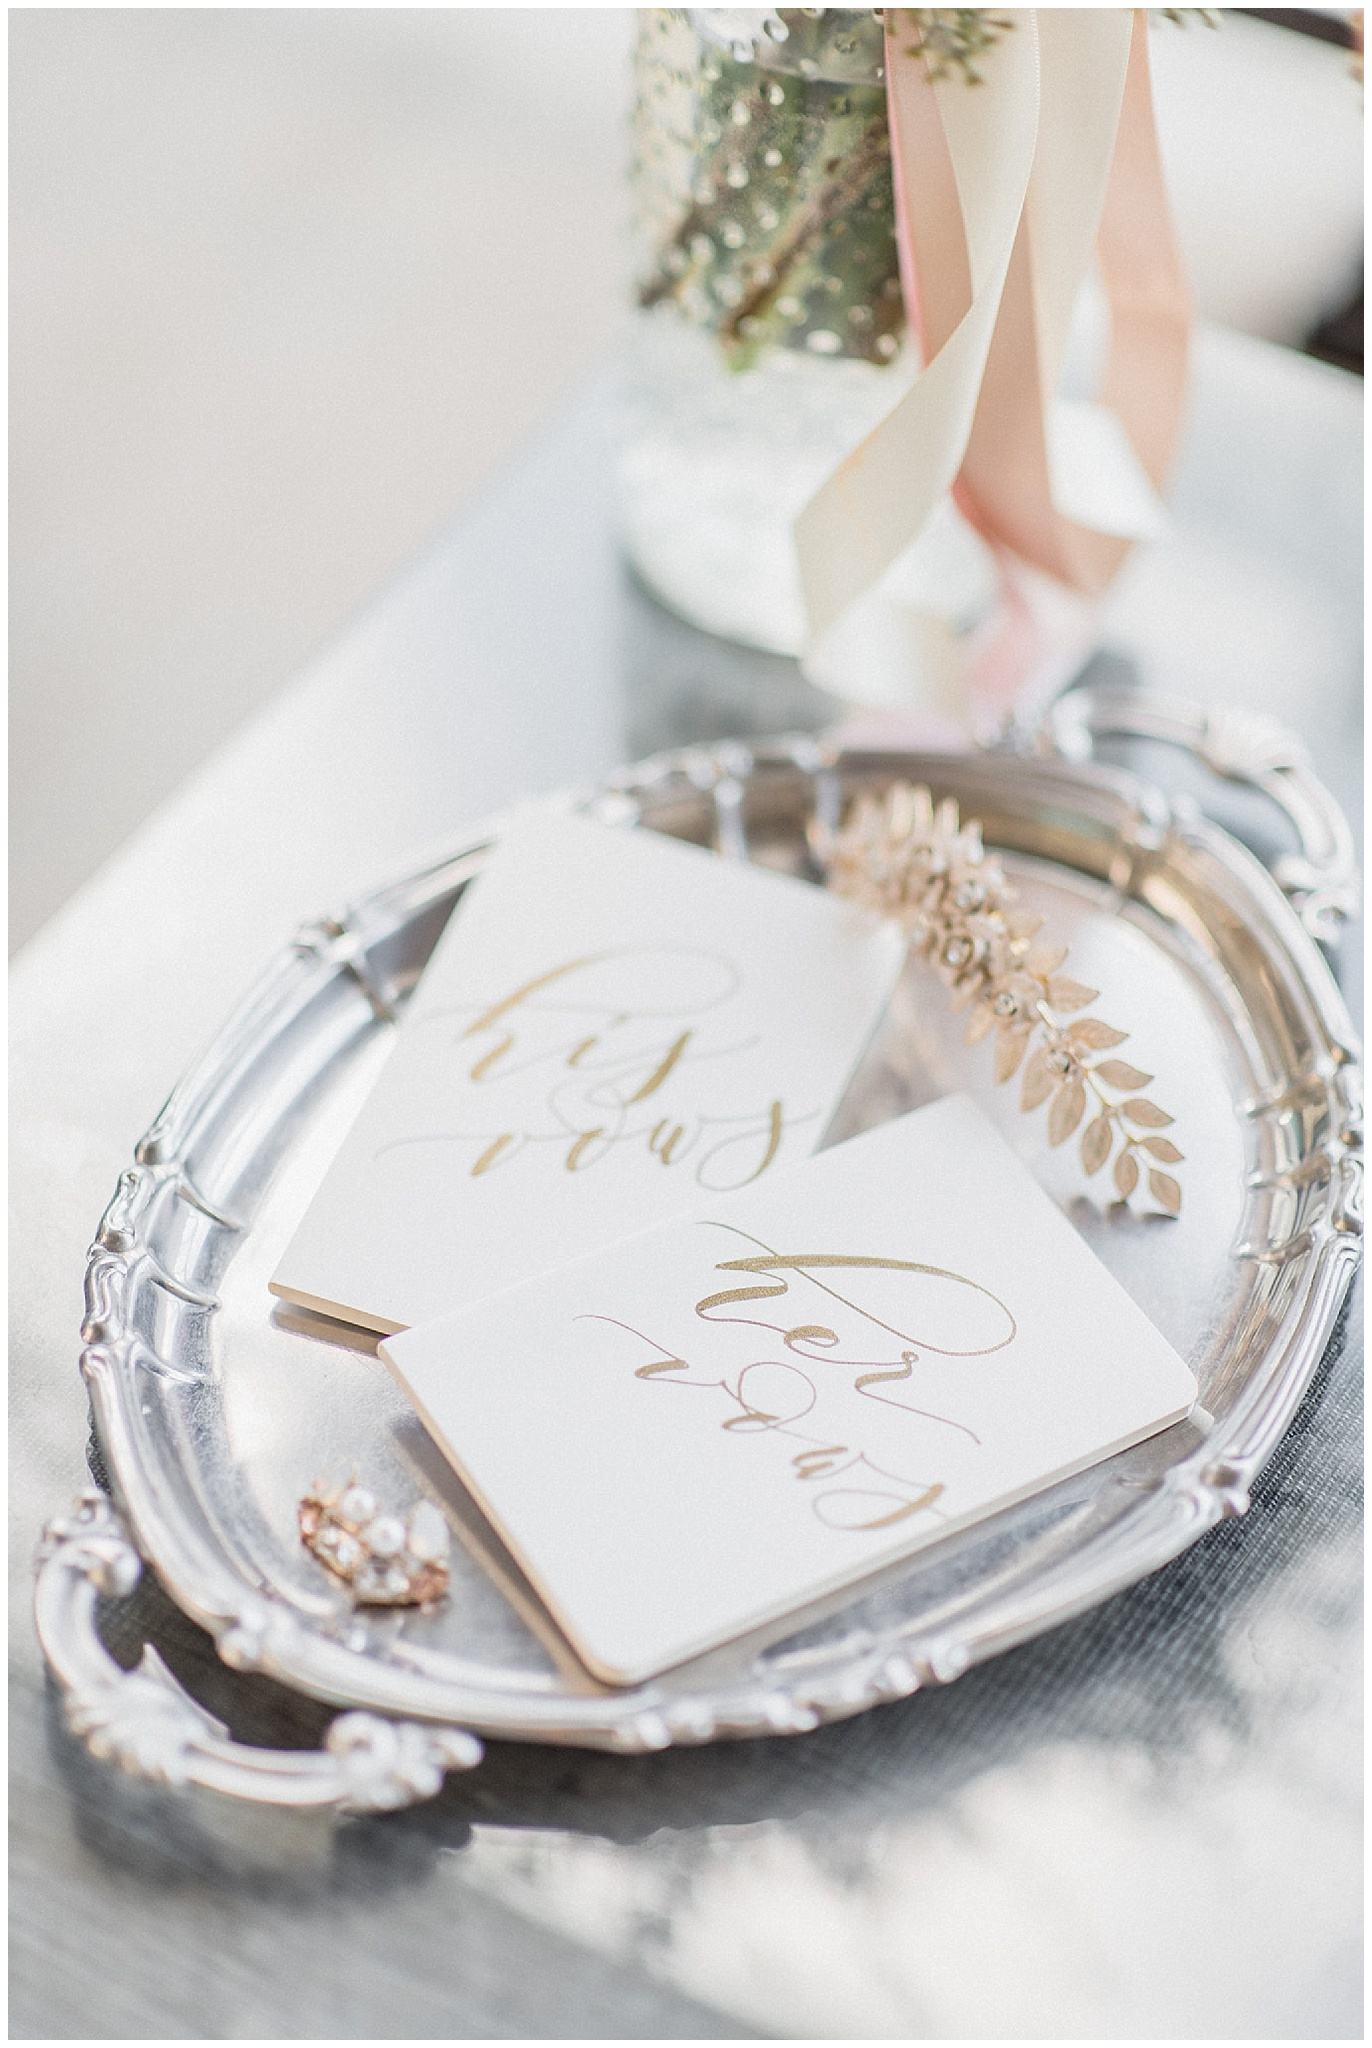 Vow books by Seniman Calligraphy, photographed by Jenn Kavanagh Photography